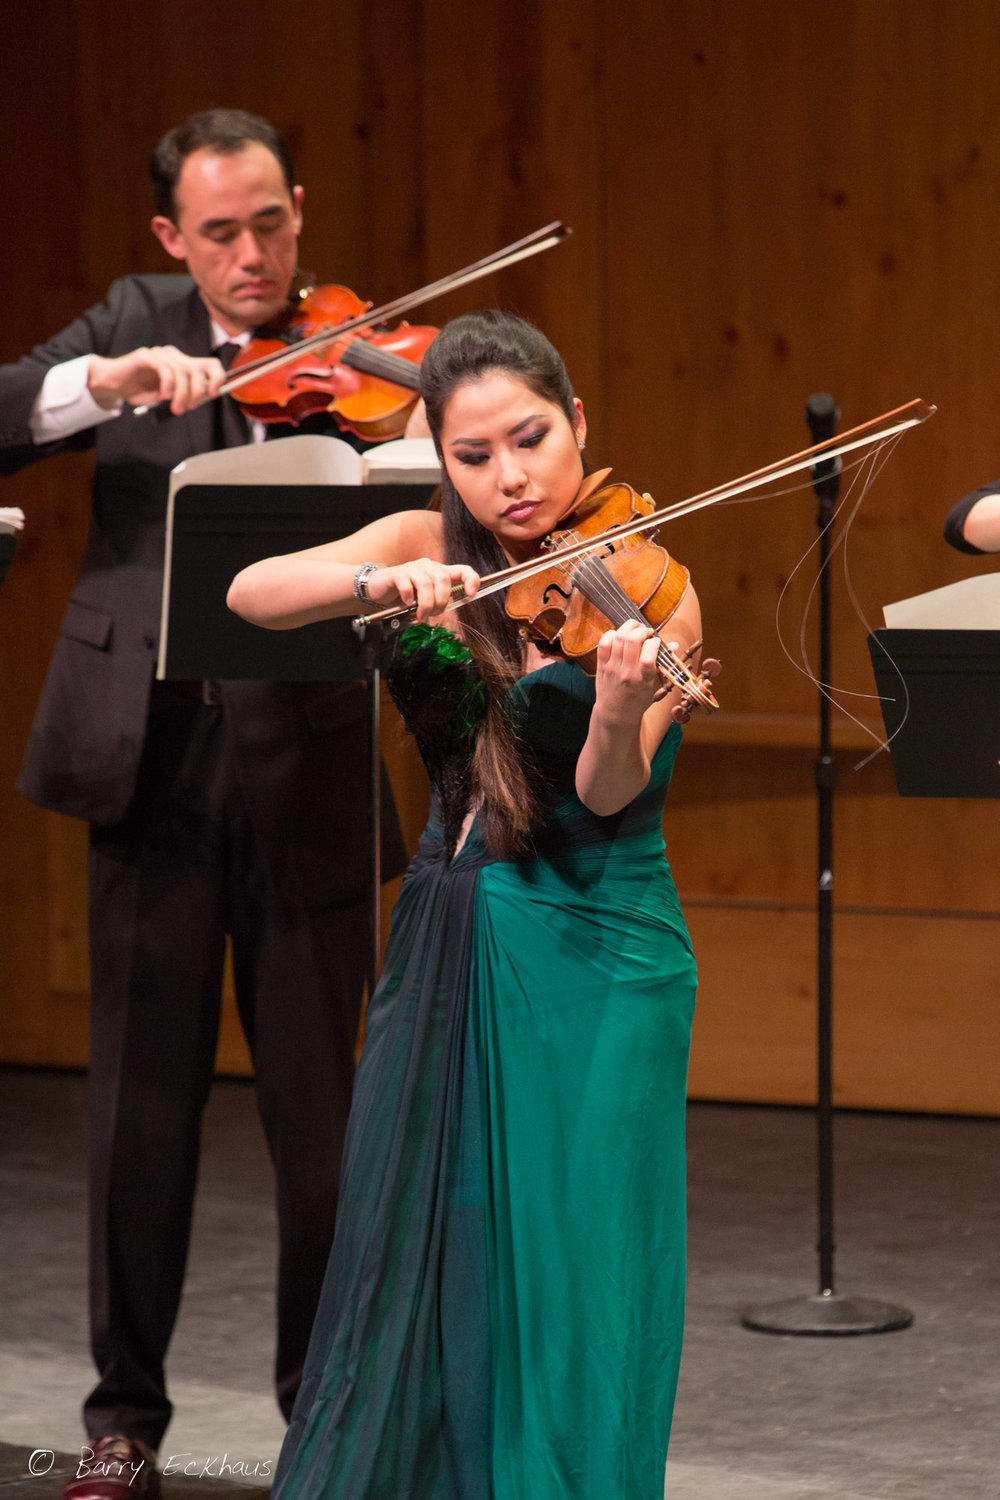 Sarah Chang at the Vilar Performing Arts Center